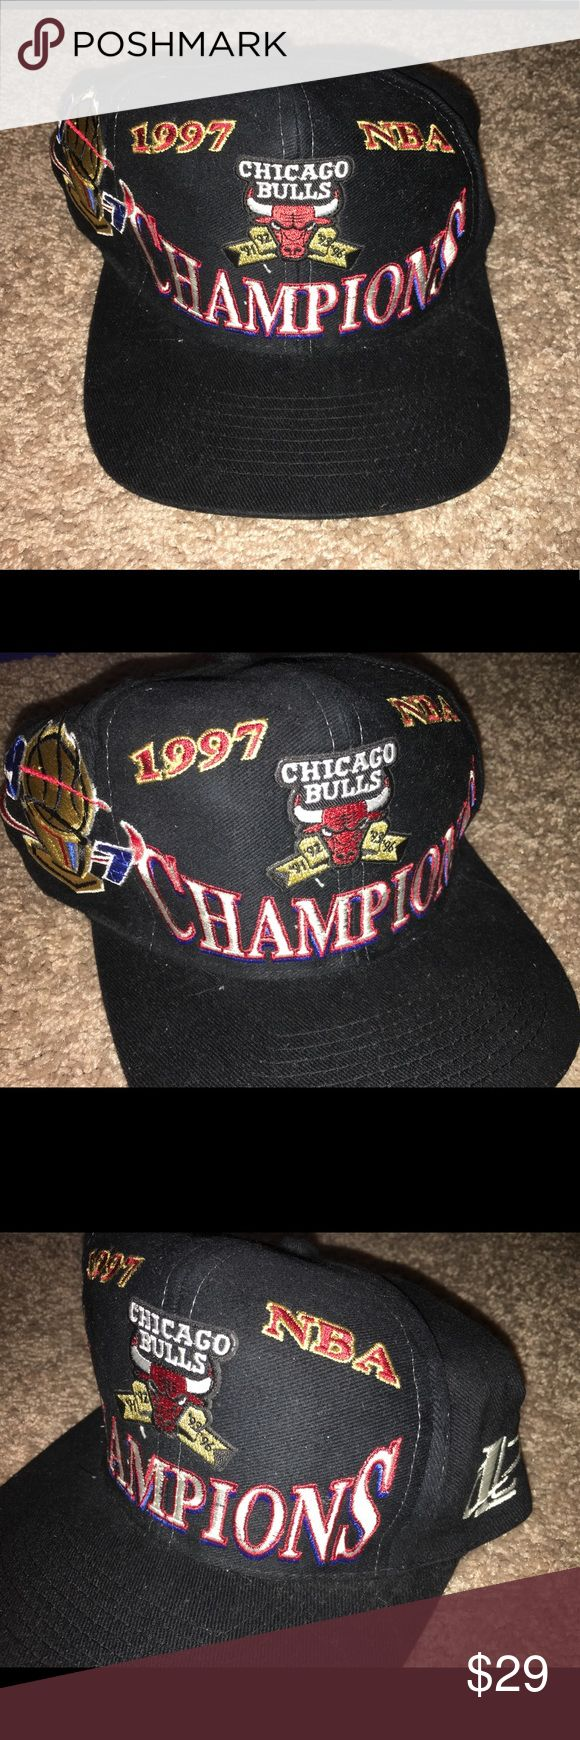 NBA 1997 champions Chicago Bulls hat NWOT Thank you for viewing my listing, for sale is a vintage, 1997, NBA Chicago Bulls, champions, logo athletic brand, snap back hat. Item is brand new, I am the original owner. Hat has never been worn, but the hat does not have any tags either.  If you have any questions or would like additional photos please feel free to ask. logo athletic Accessories Hats